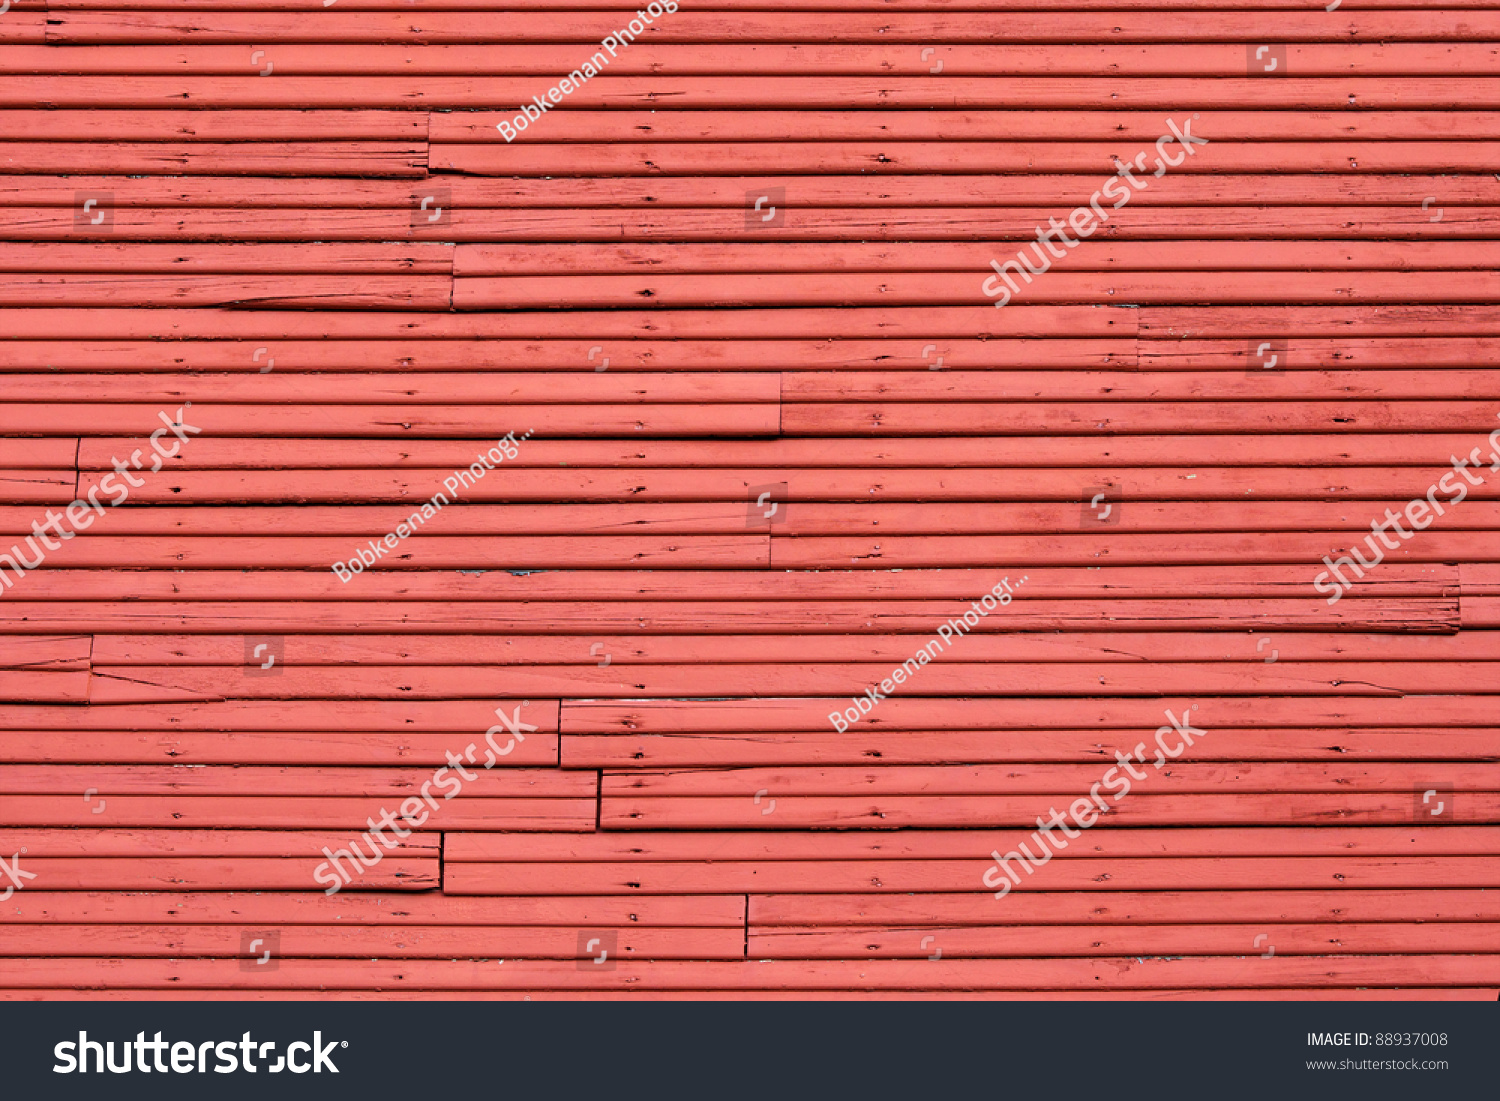 Vertical Wood Slat Wall Pictures To Pin On Pinterest